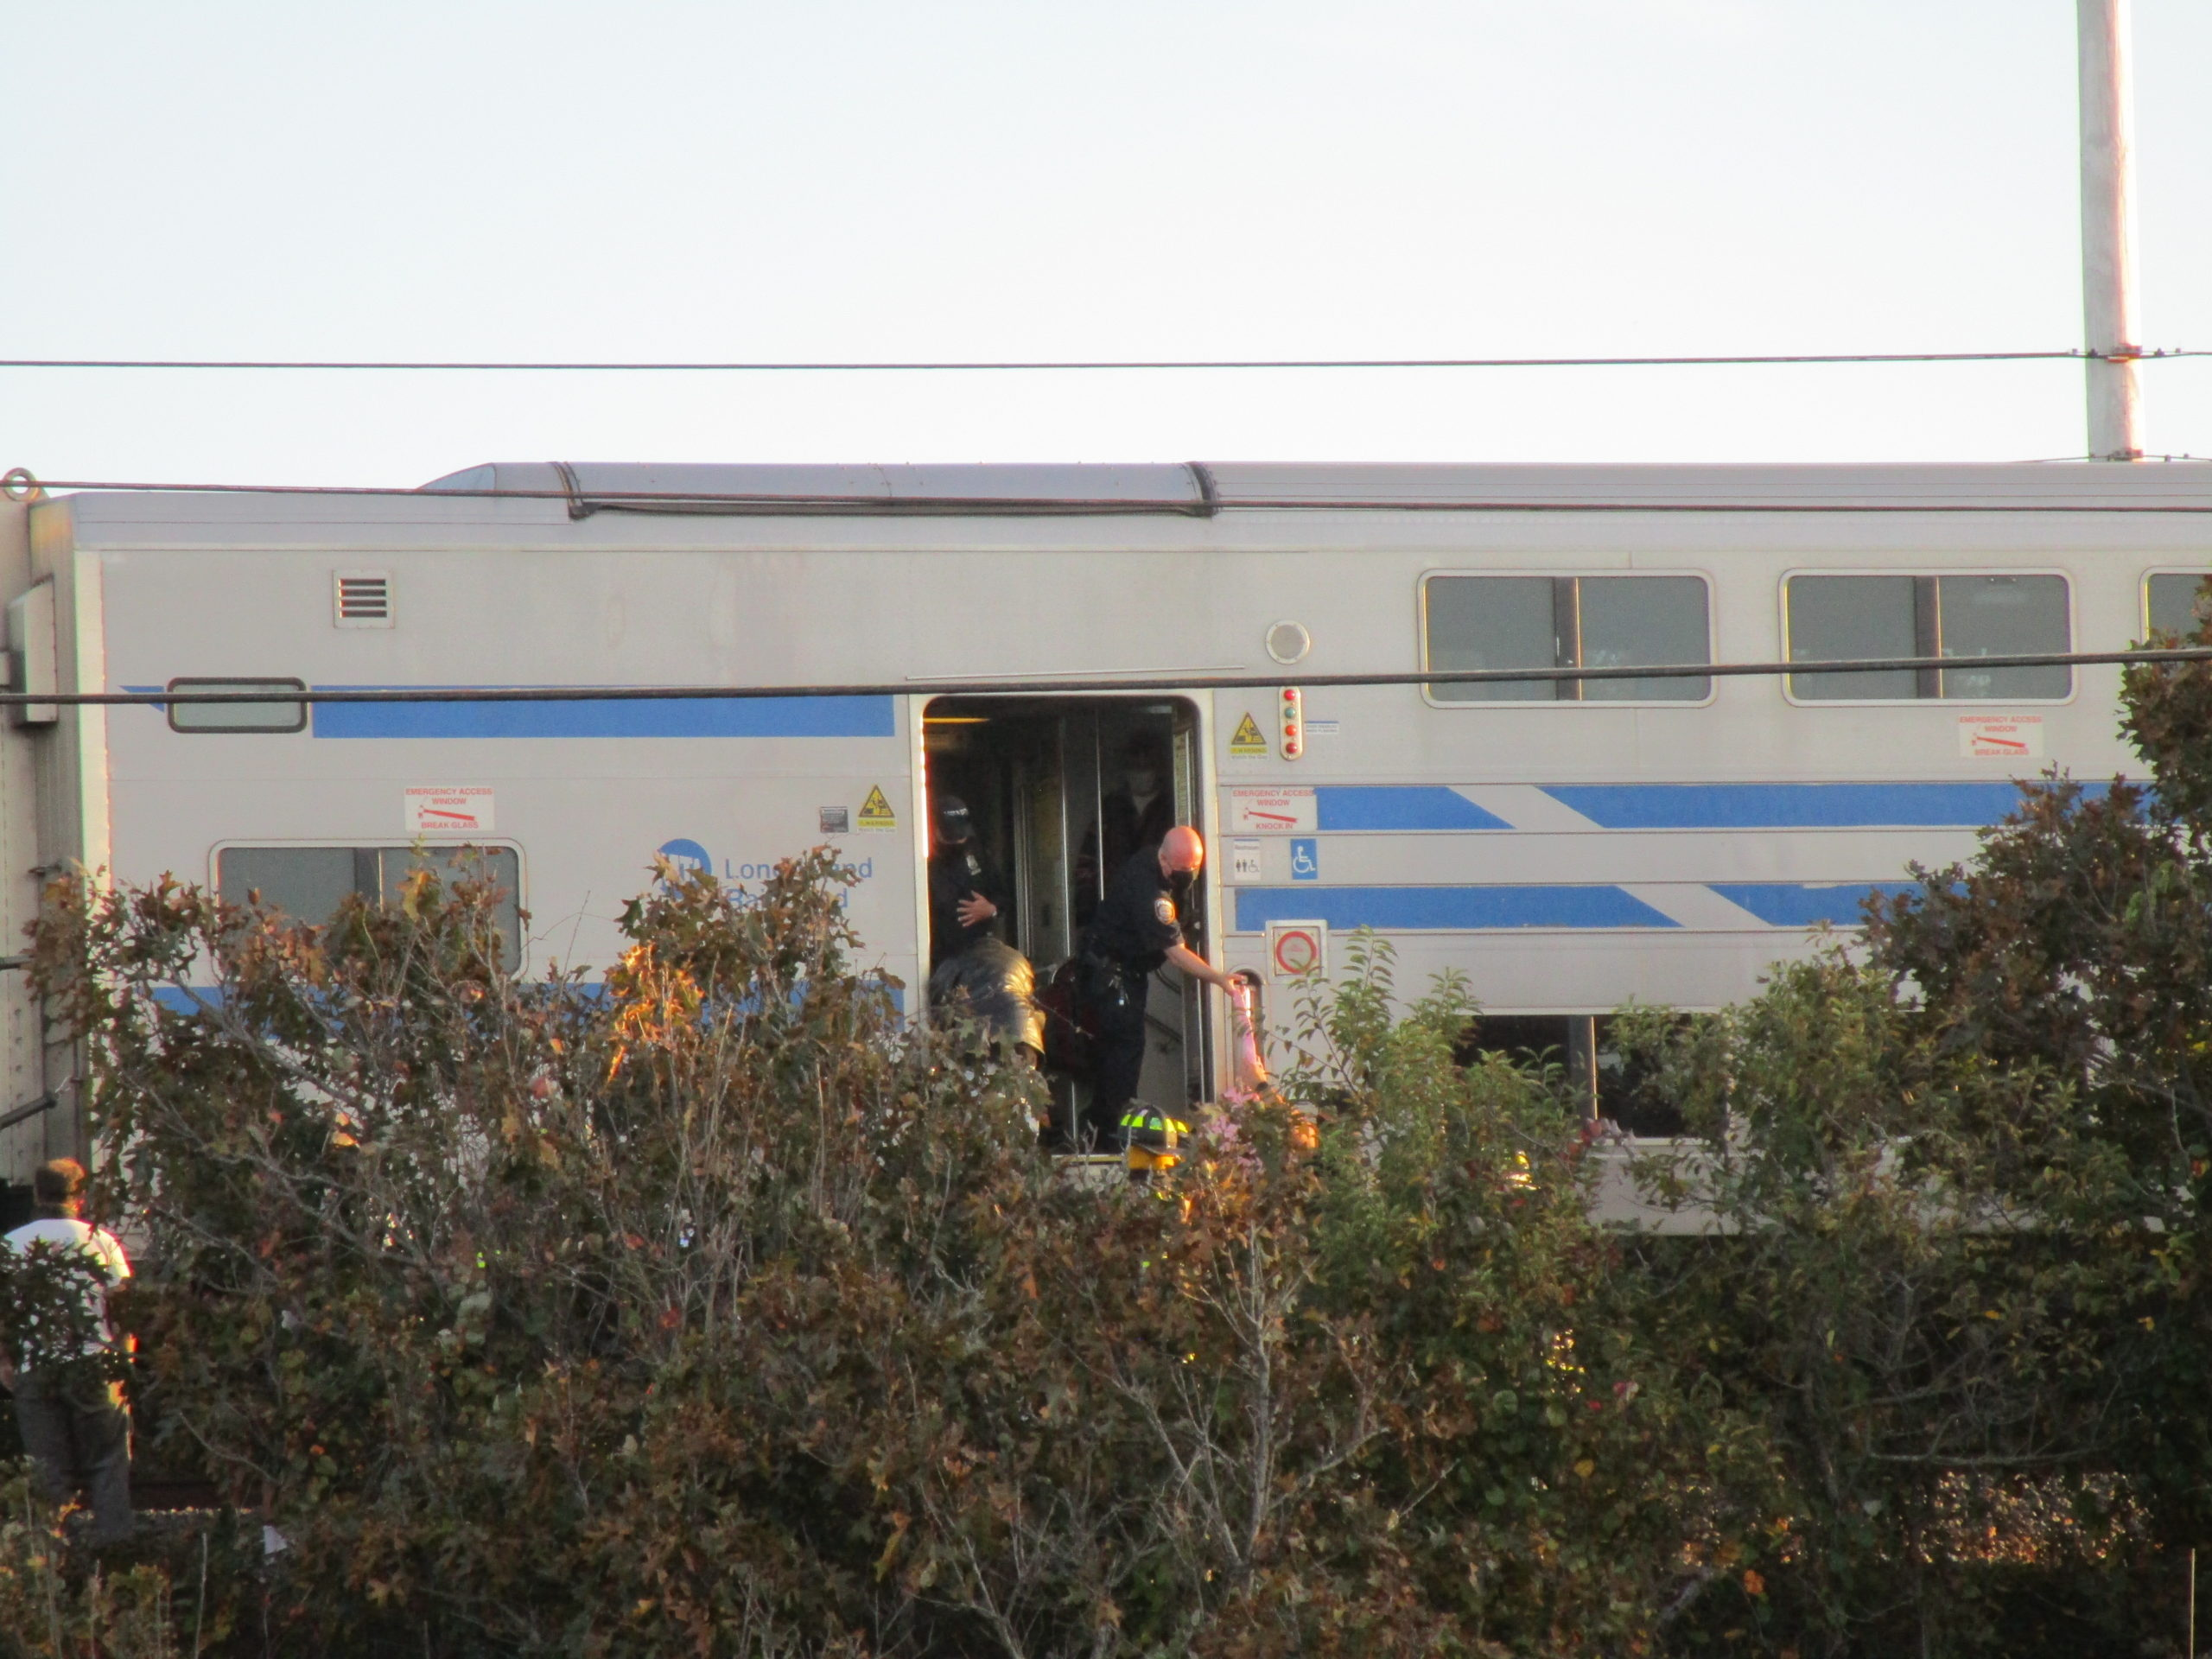 A Long Island Rail Road train stalled near Navy Beach in Montauk, about a mile from its intended destination. The Montauk Fire Department had to be called out to help the 15 passengers aboard disembark via ladder on a steeply sloping track bed.